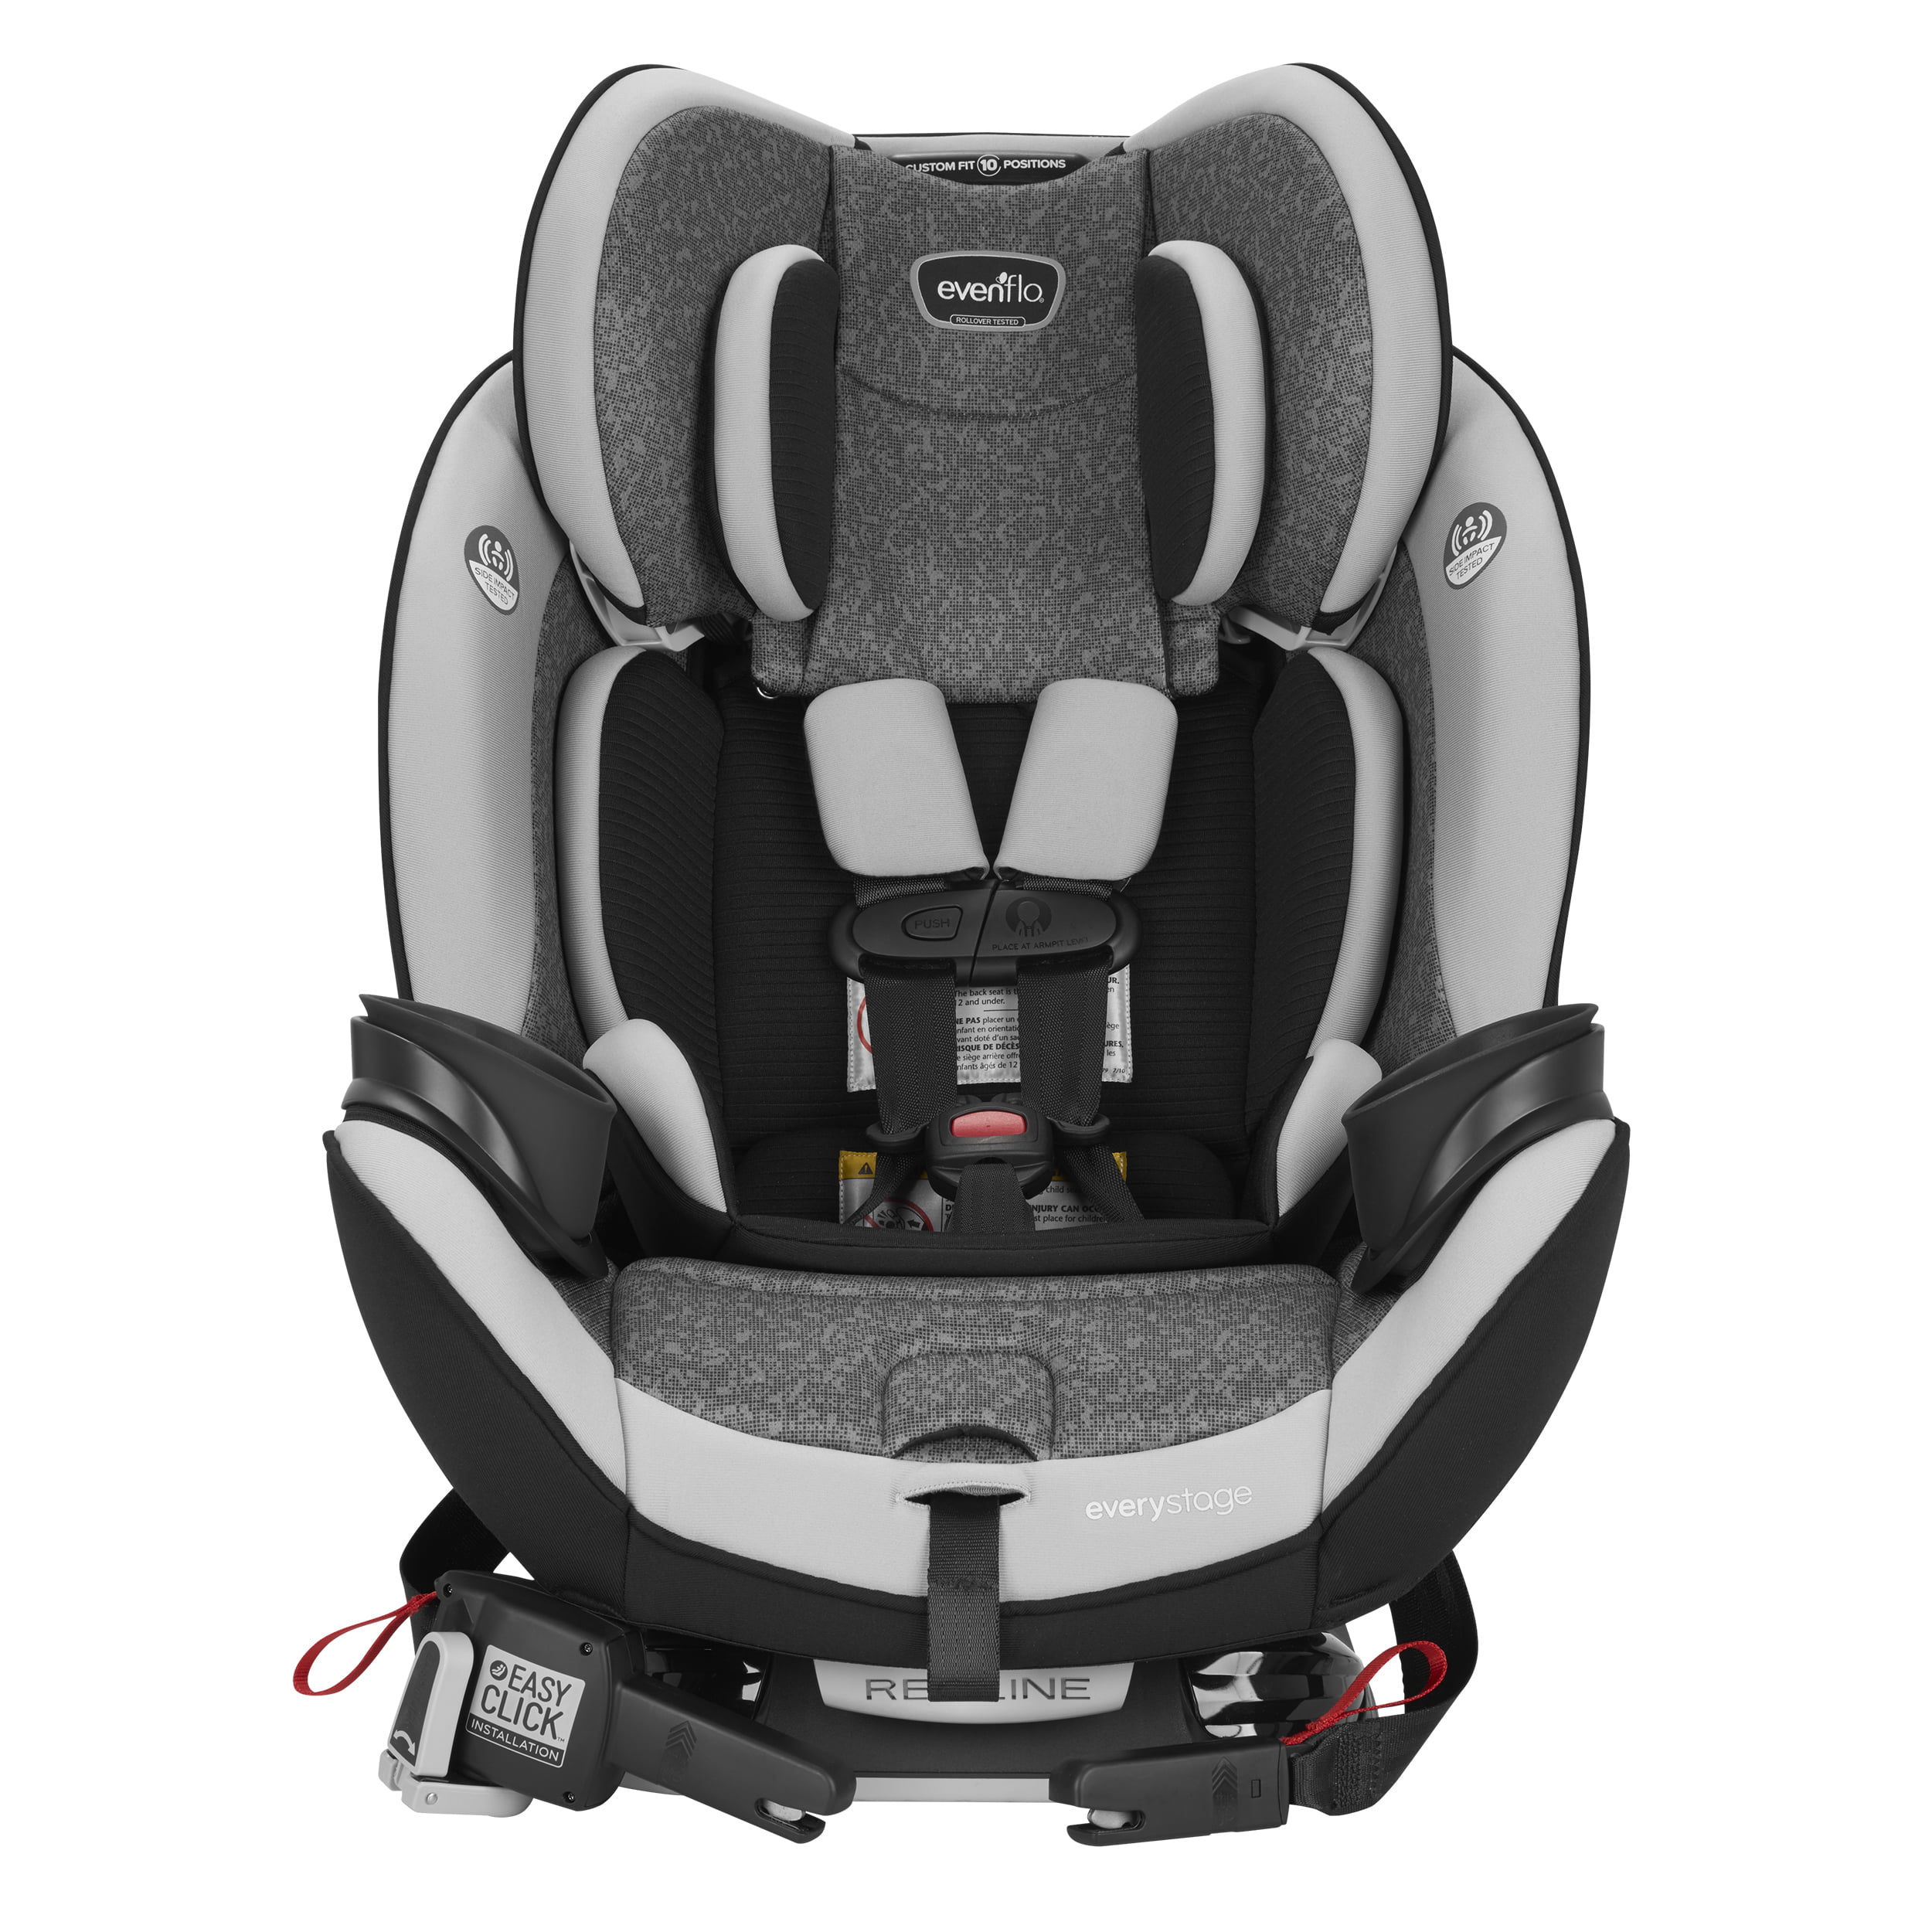 Evenflo EveryStage DLX All-In-One Car Seat, Lattitude